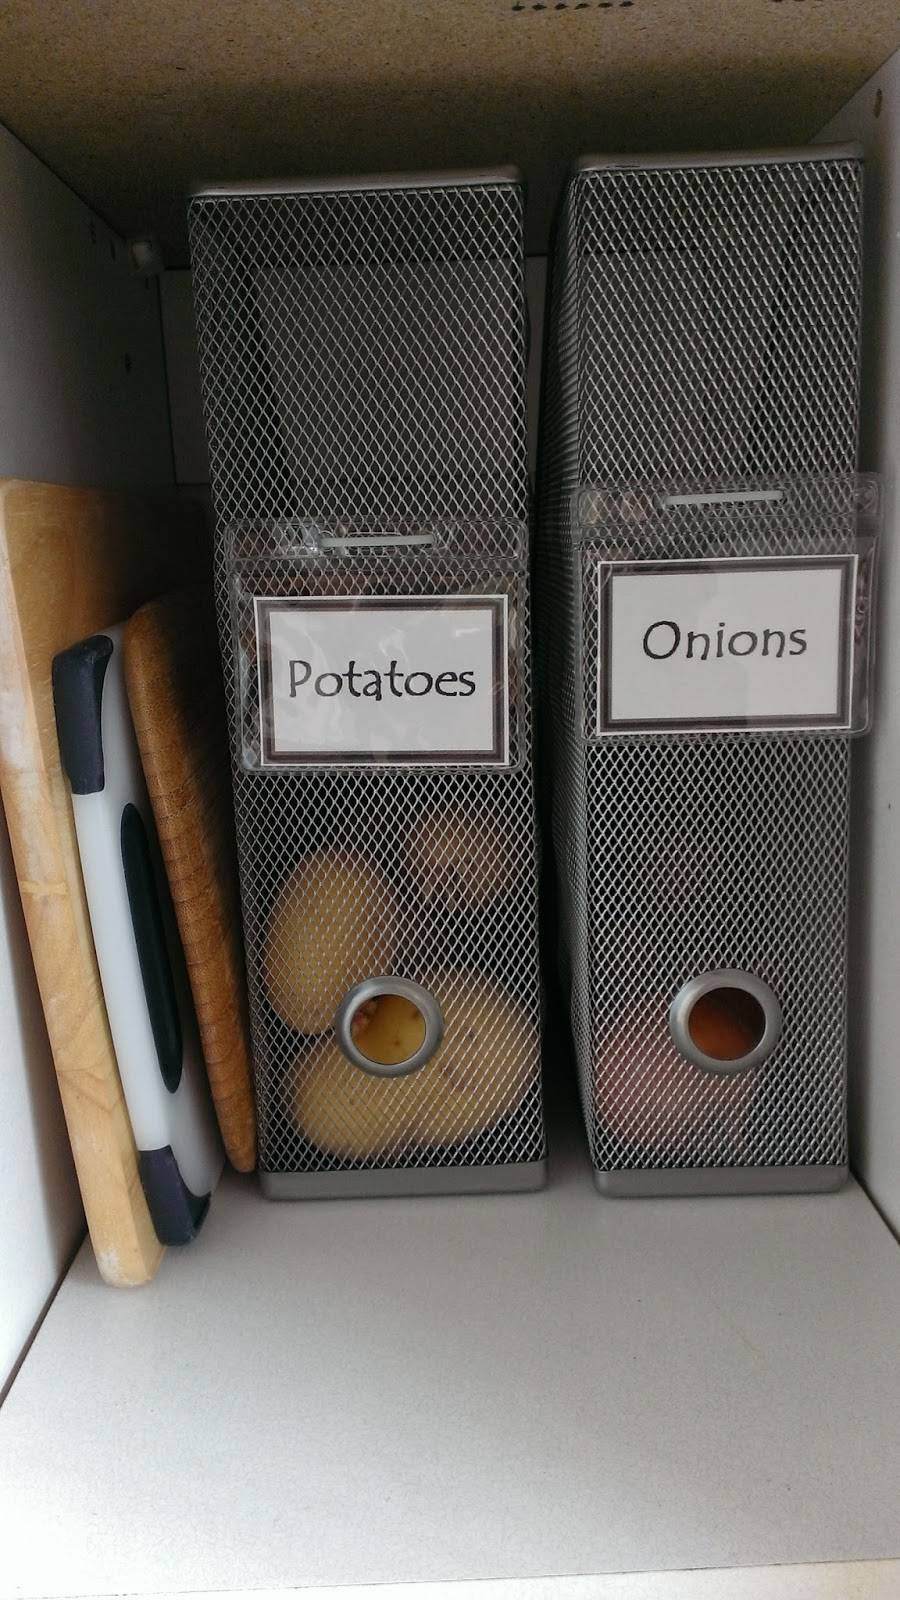 20+ Creative Uses for Magazine Holders to Organize Your Home --> Use mesh magazine holders to corral produce such as potatoes and onions and label them